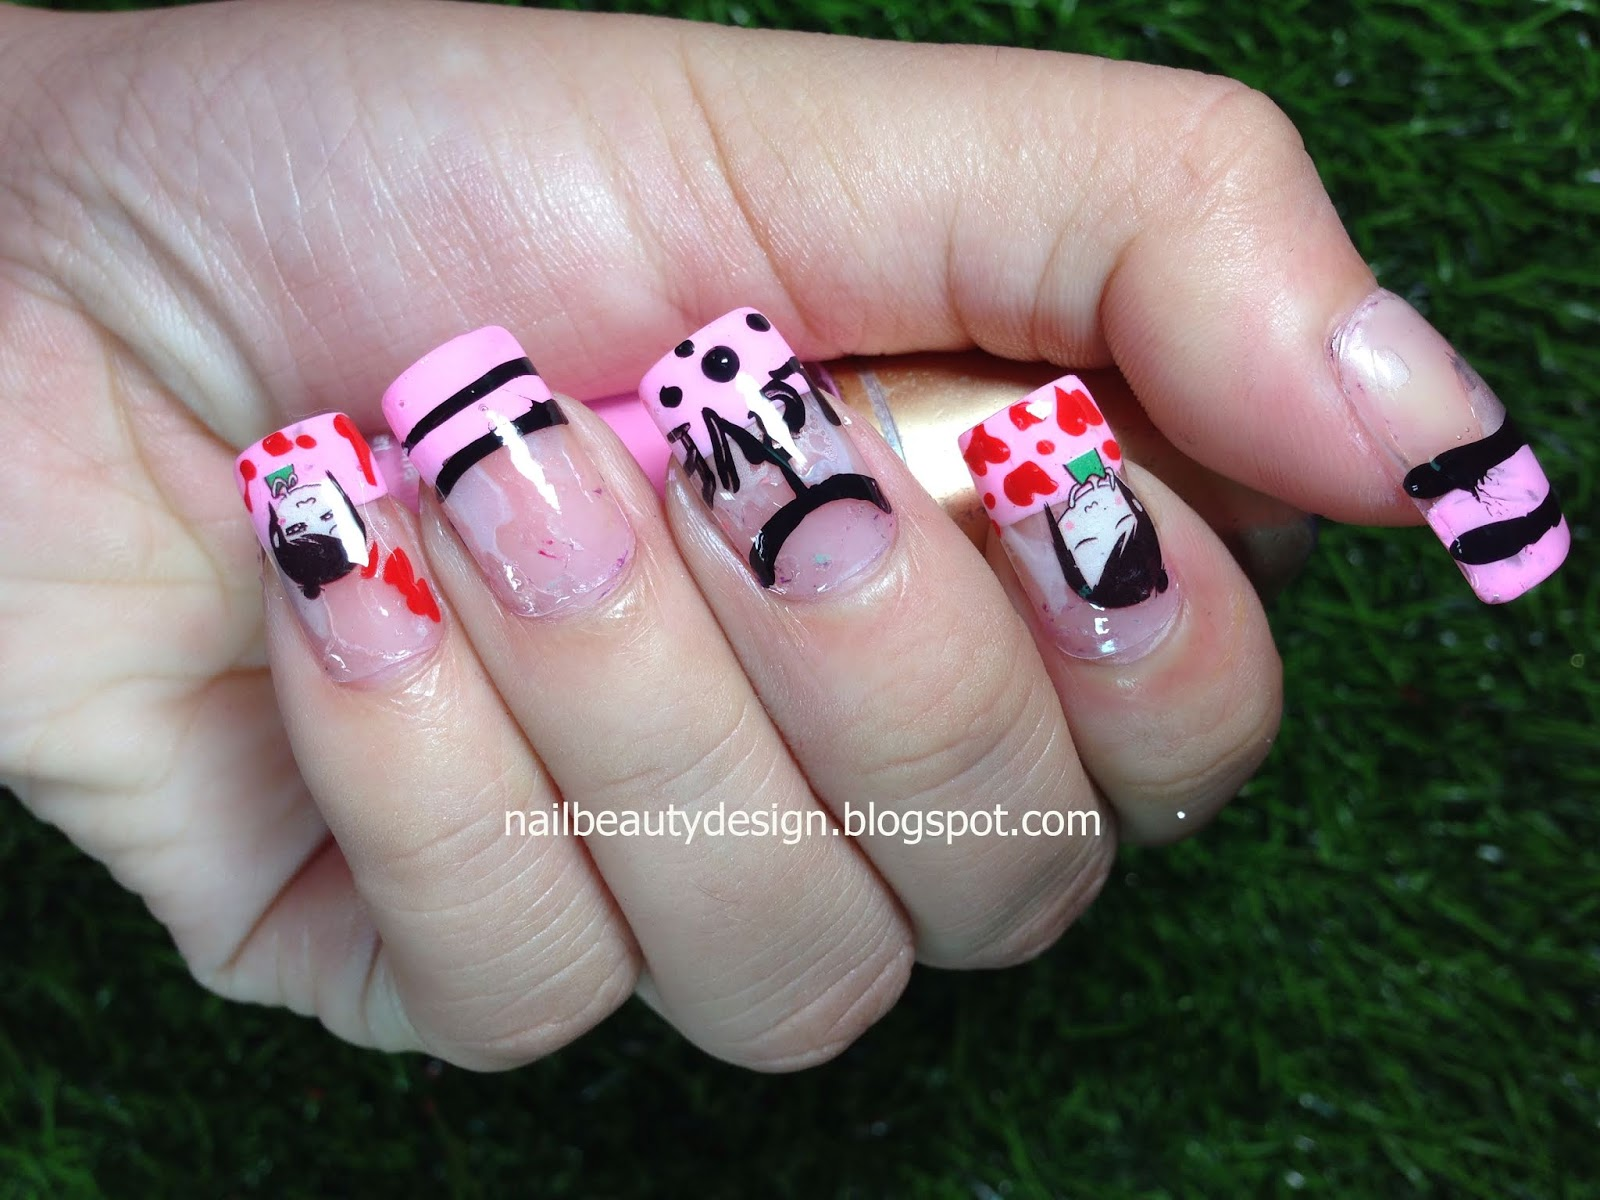 Simple Cute Nails Designs Styles You Can Try At Home #40 - Nail ...